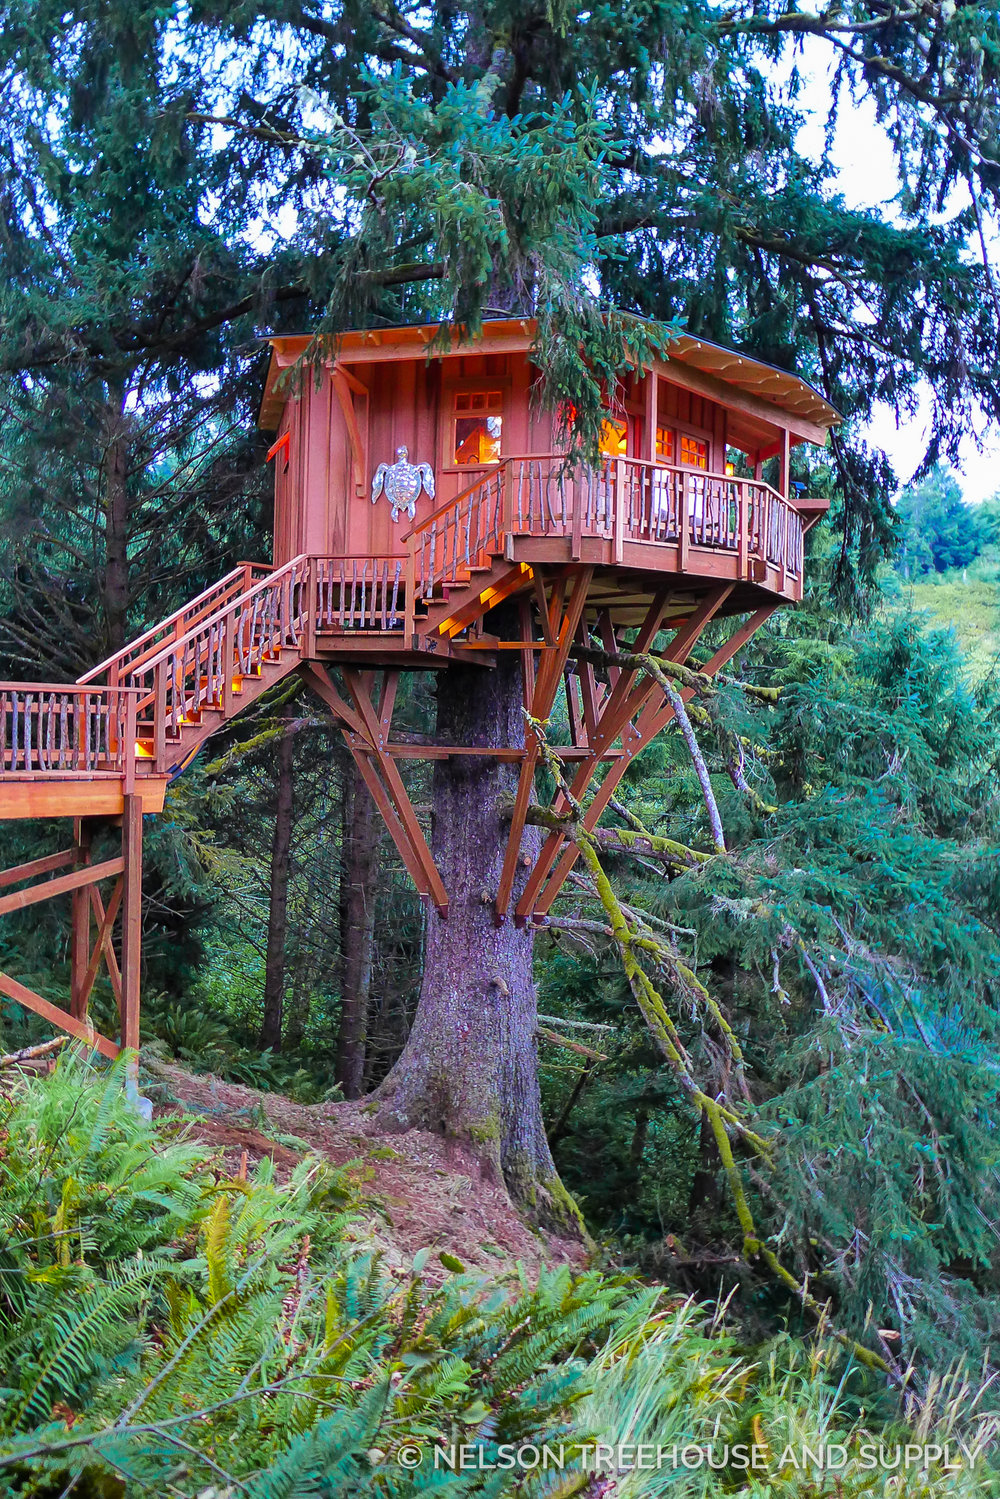 Pete Nelson Single Tree Treehouse